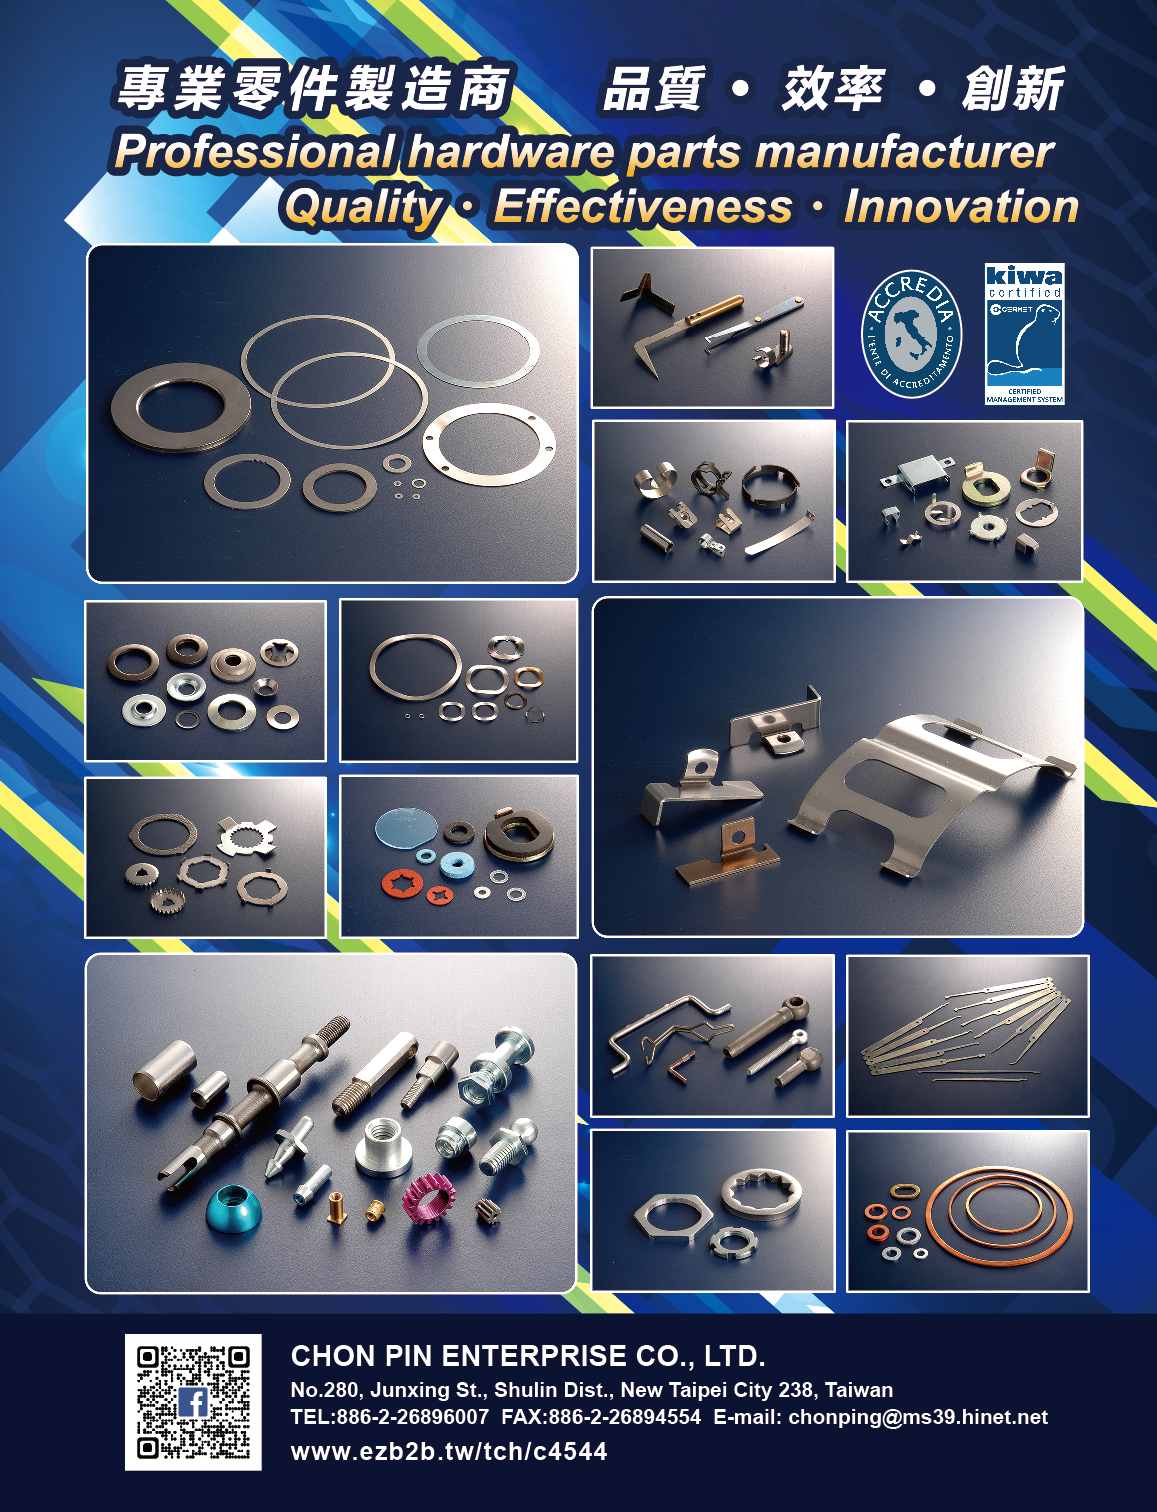 CHON PIN ENTERPRISE CO., LTD